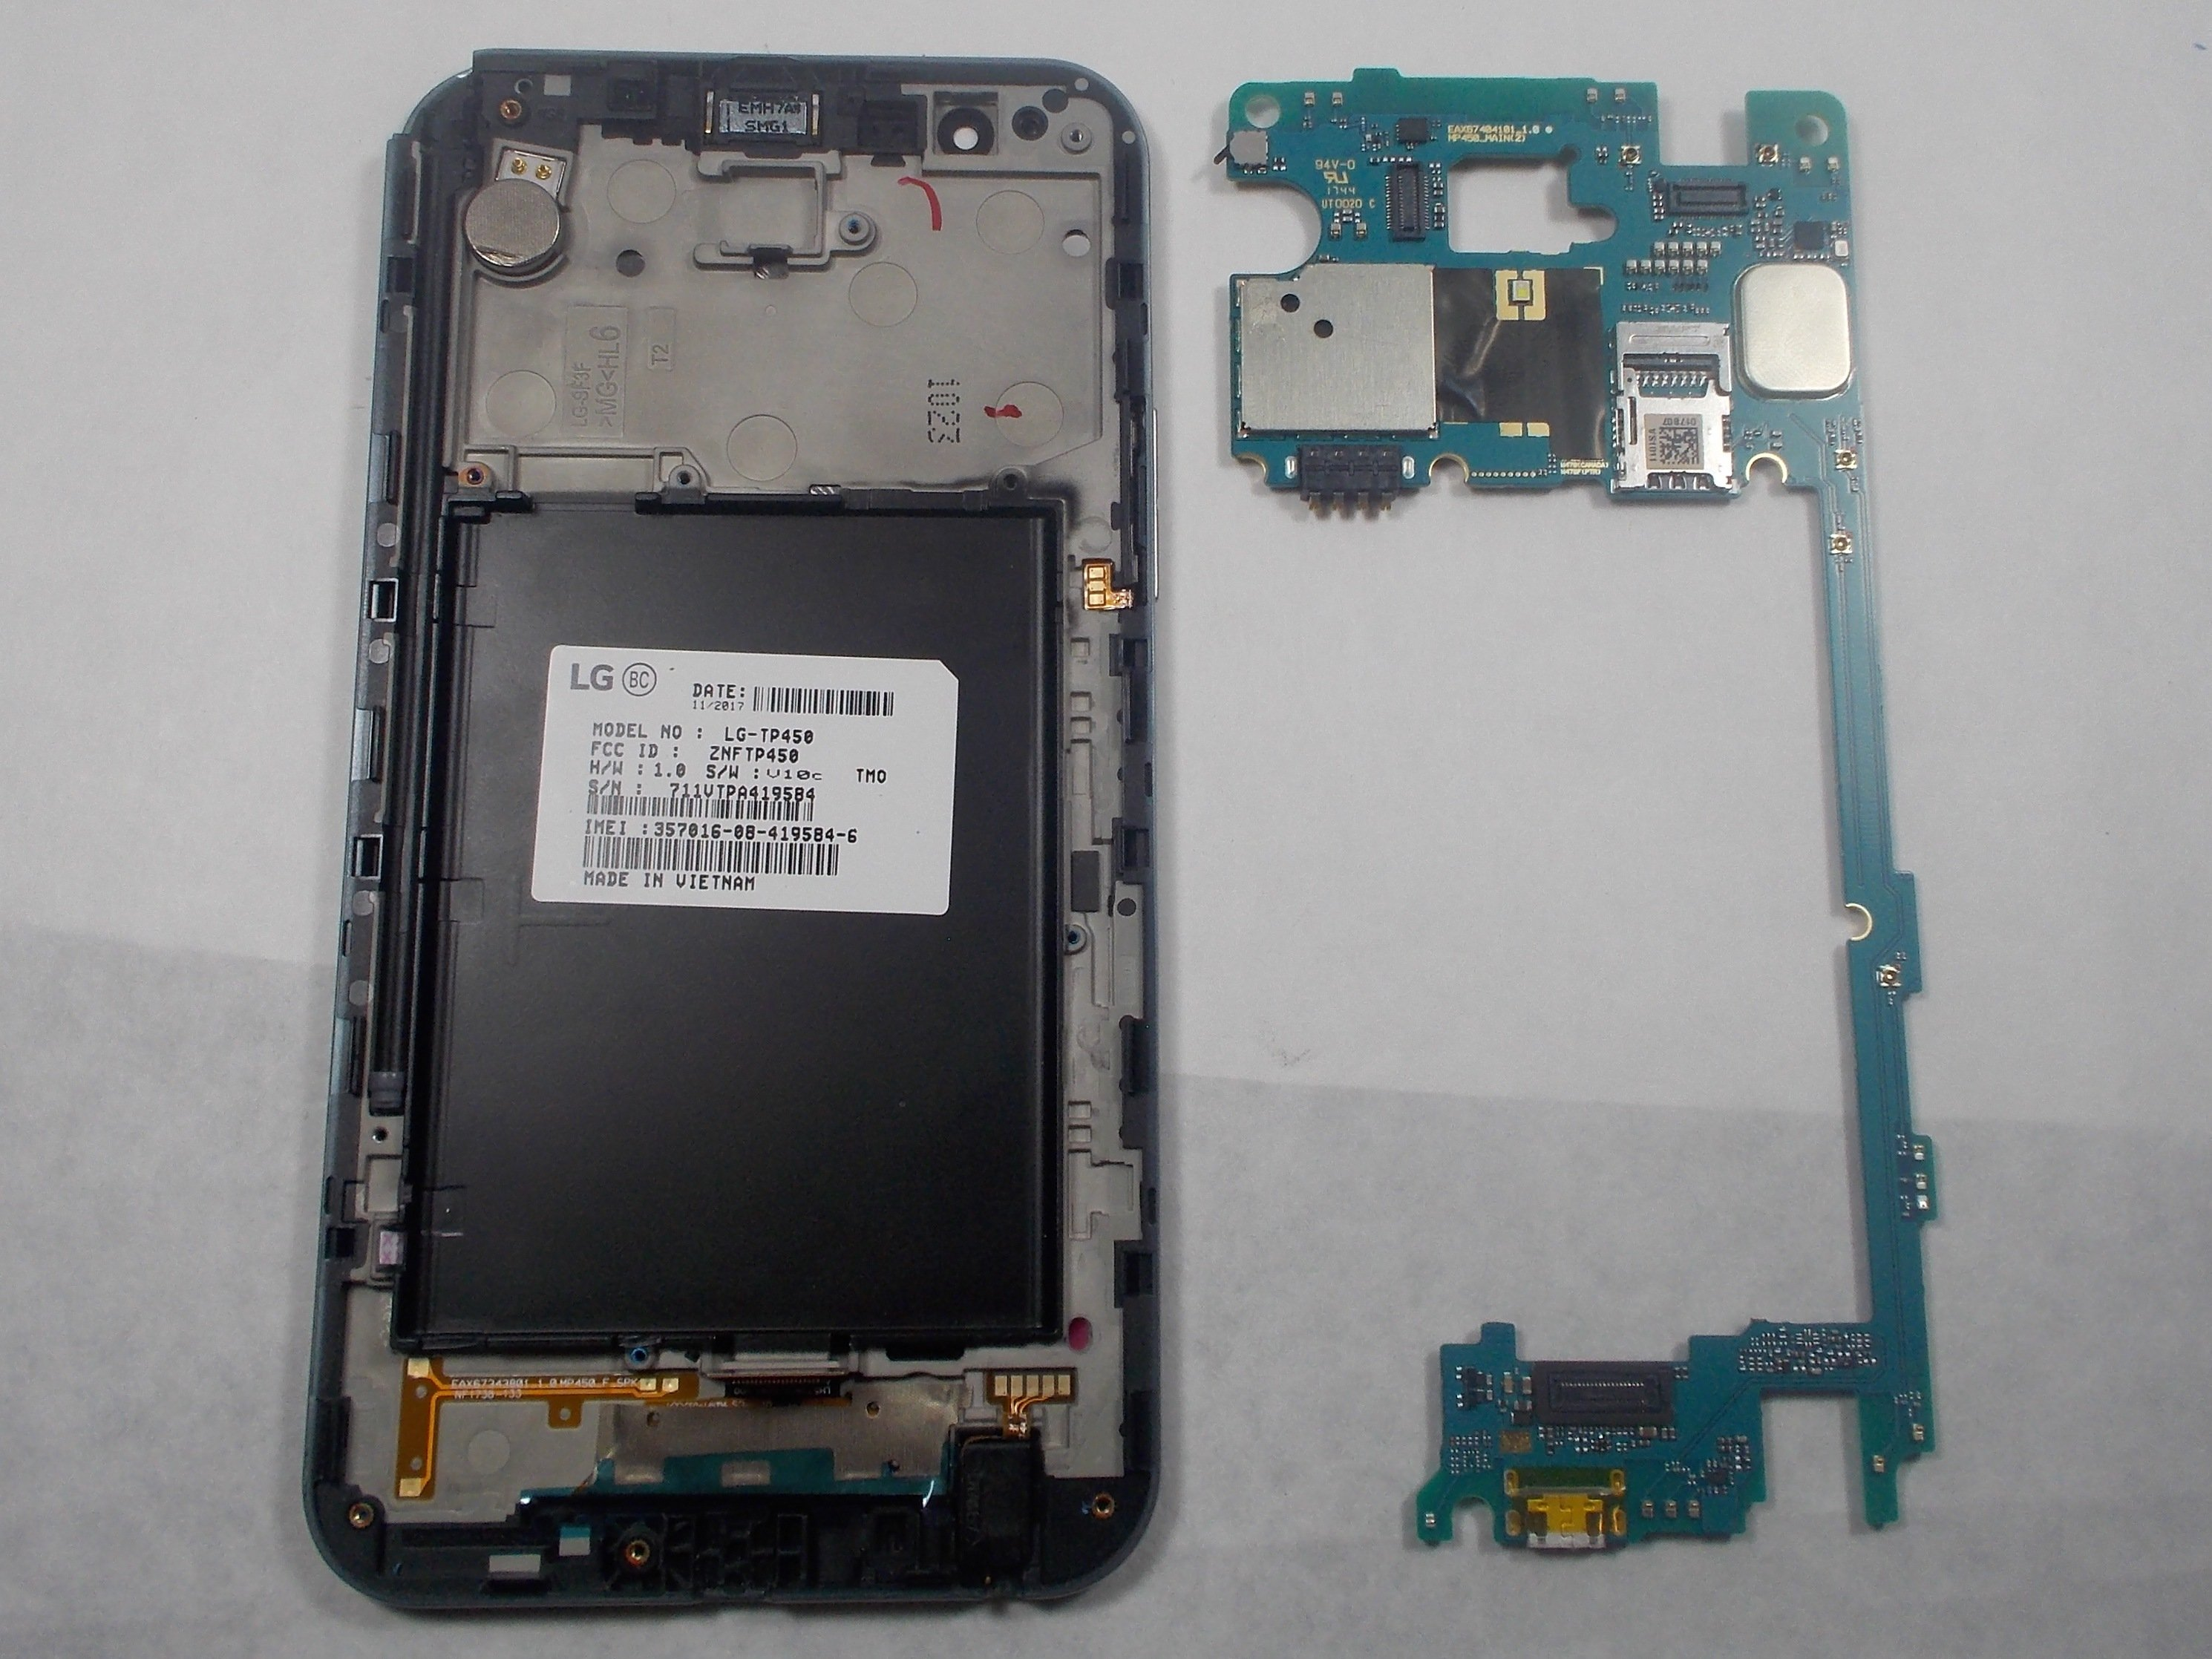 LG Stylo 3 Plus Motherboard Replacement - iFixit Repair Guide